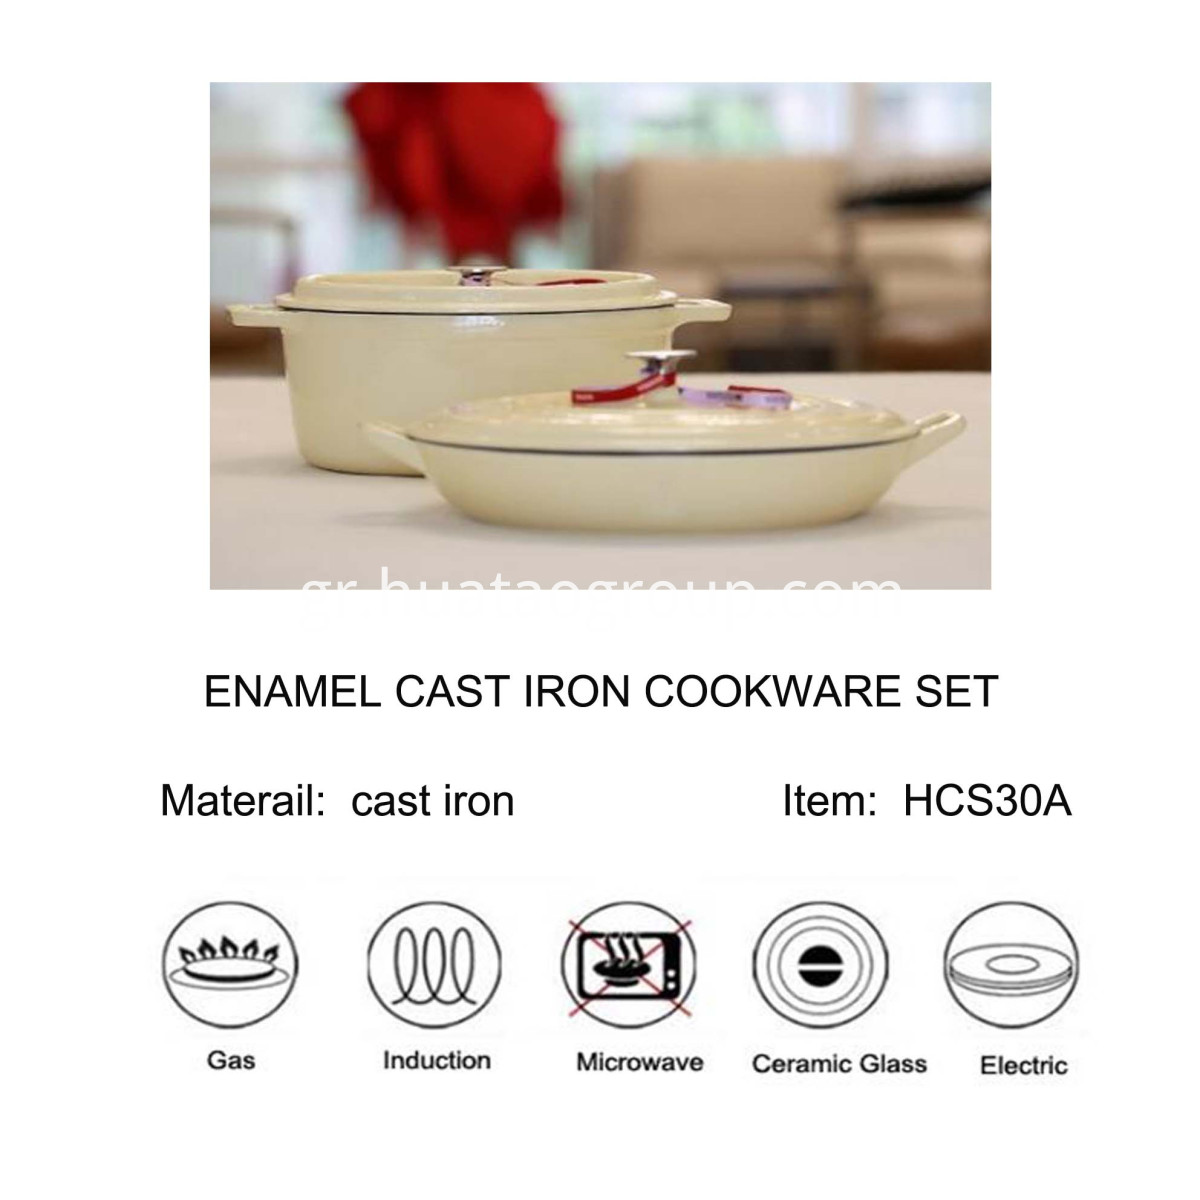 ENAMEL CAST IRON COOKWARE SET